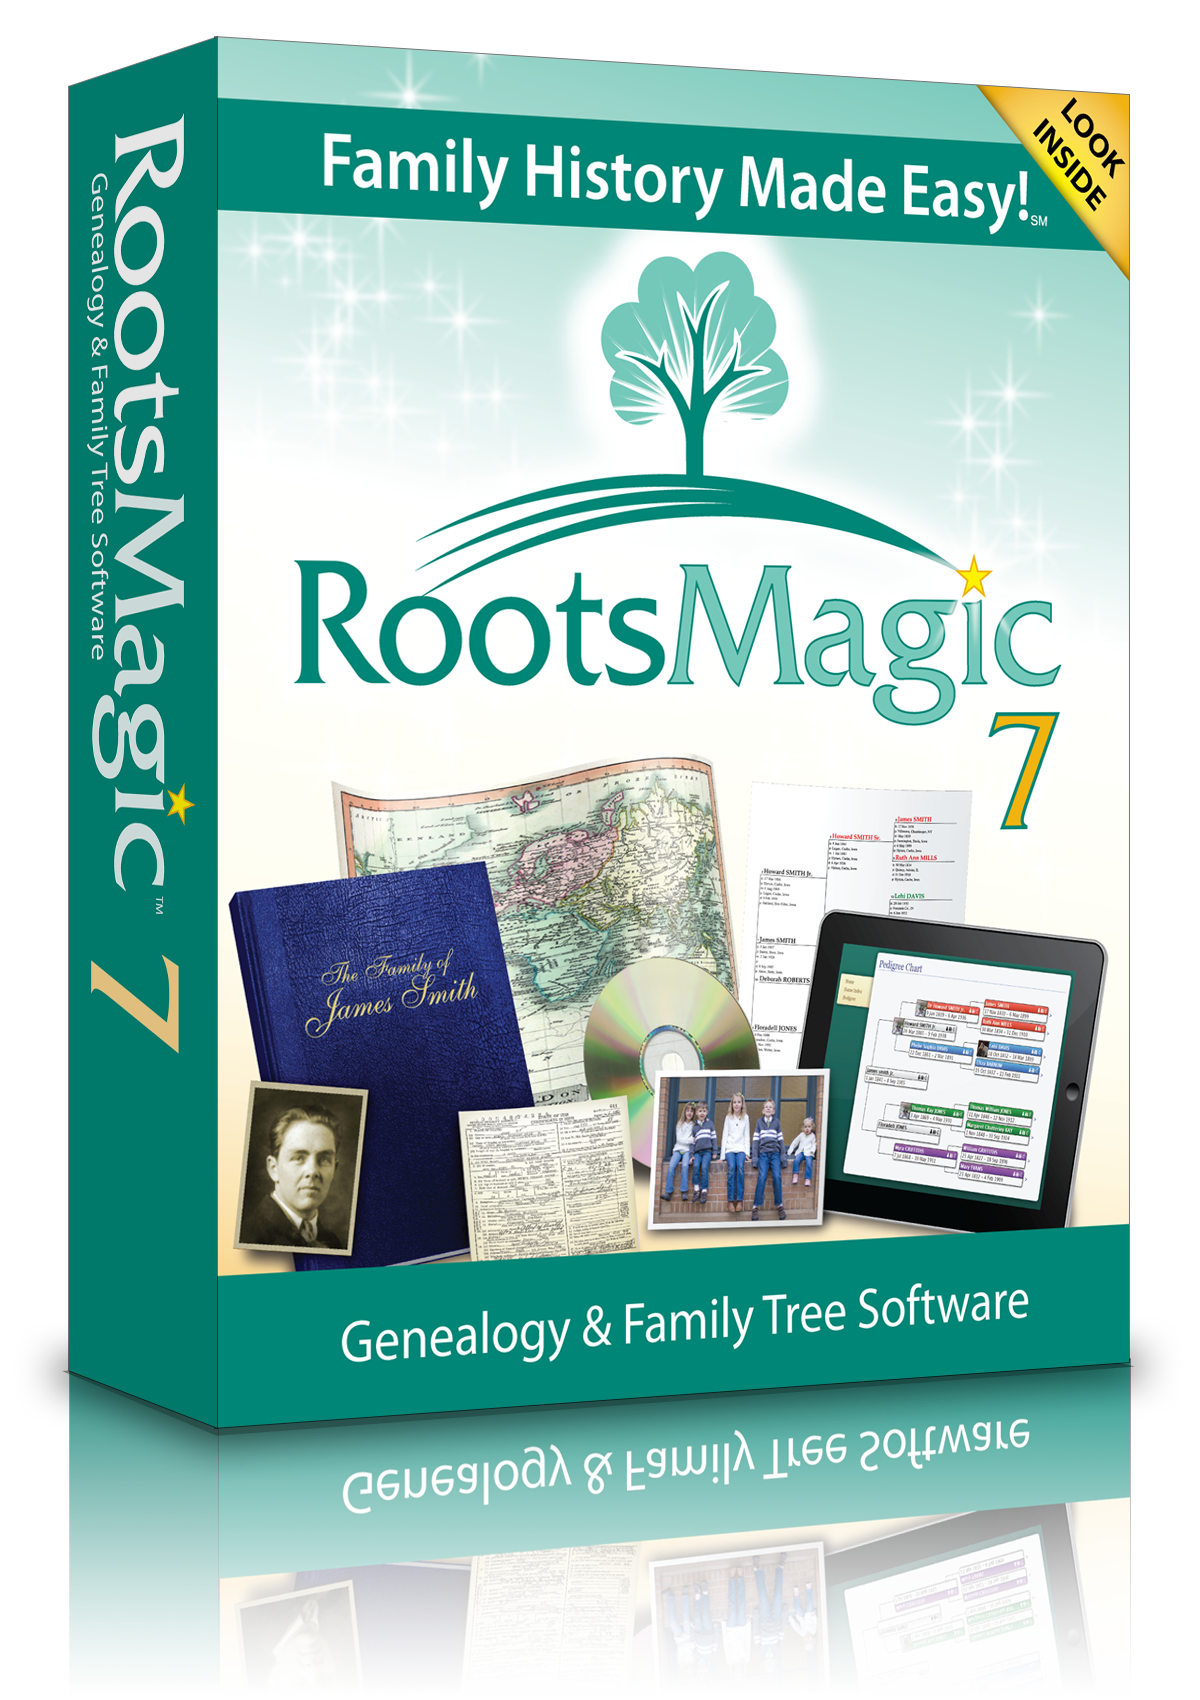 Rootsmagic Genealogy Software- Version 7.0 Roots Magic - Windows Cd-Rom, Rootsmagic